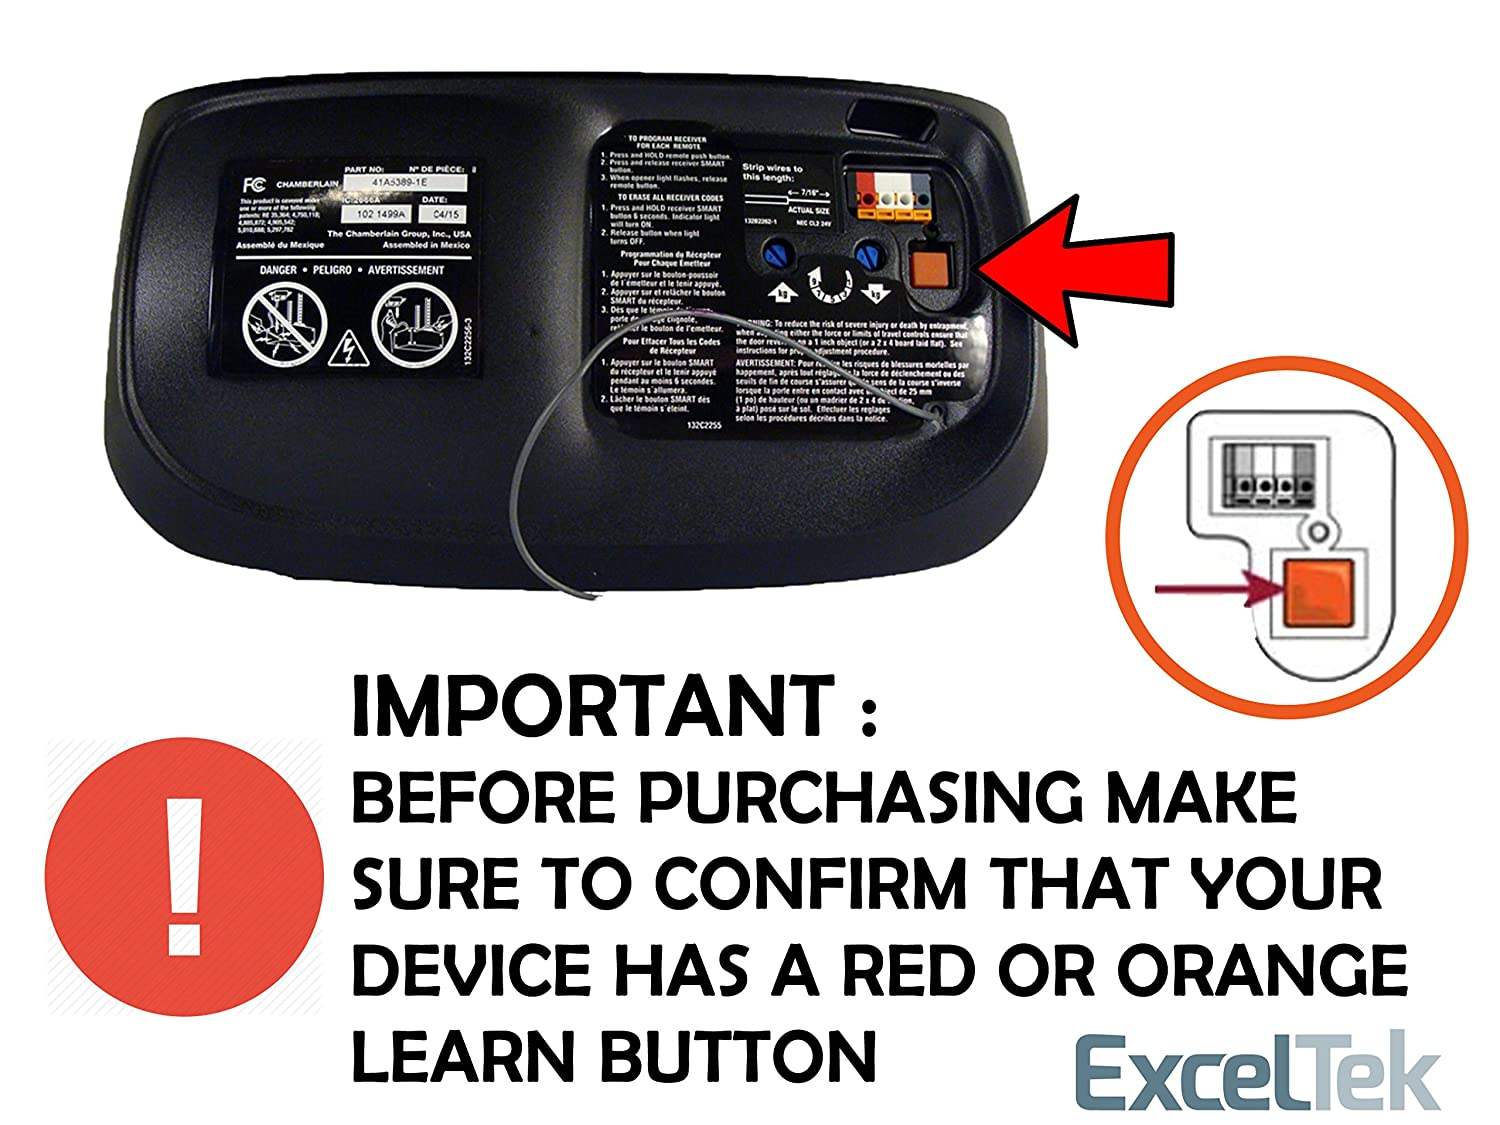 Compatible garage remote with liftmaster chamberlain craftsman 970lm compatible garage remote with liftmaster chamberlain craftsman 970lm 971lm 972lm 973lm 91lm 92lm 94lm 96lm 13953680 13953681 by exceltek amazon fandeluxe Image collections